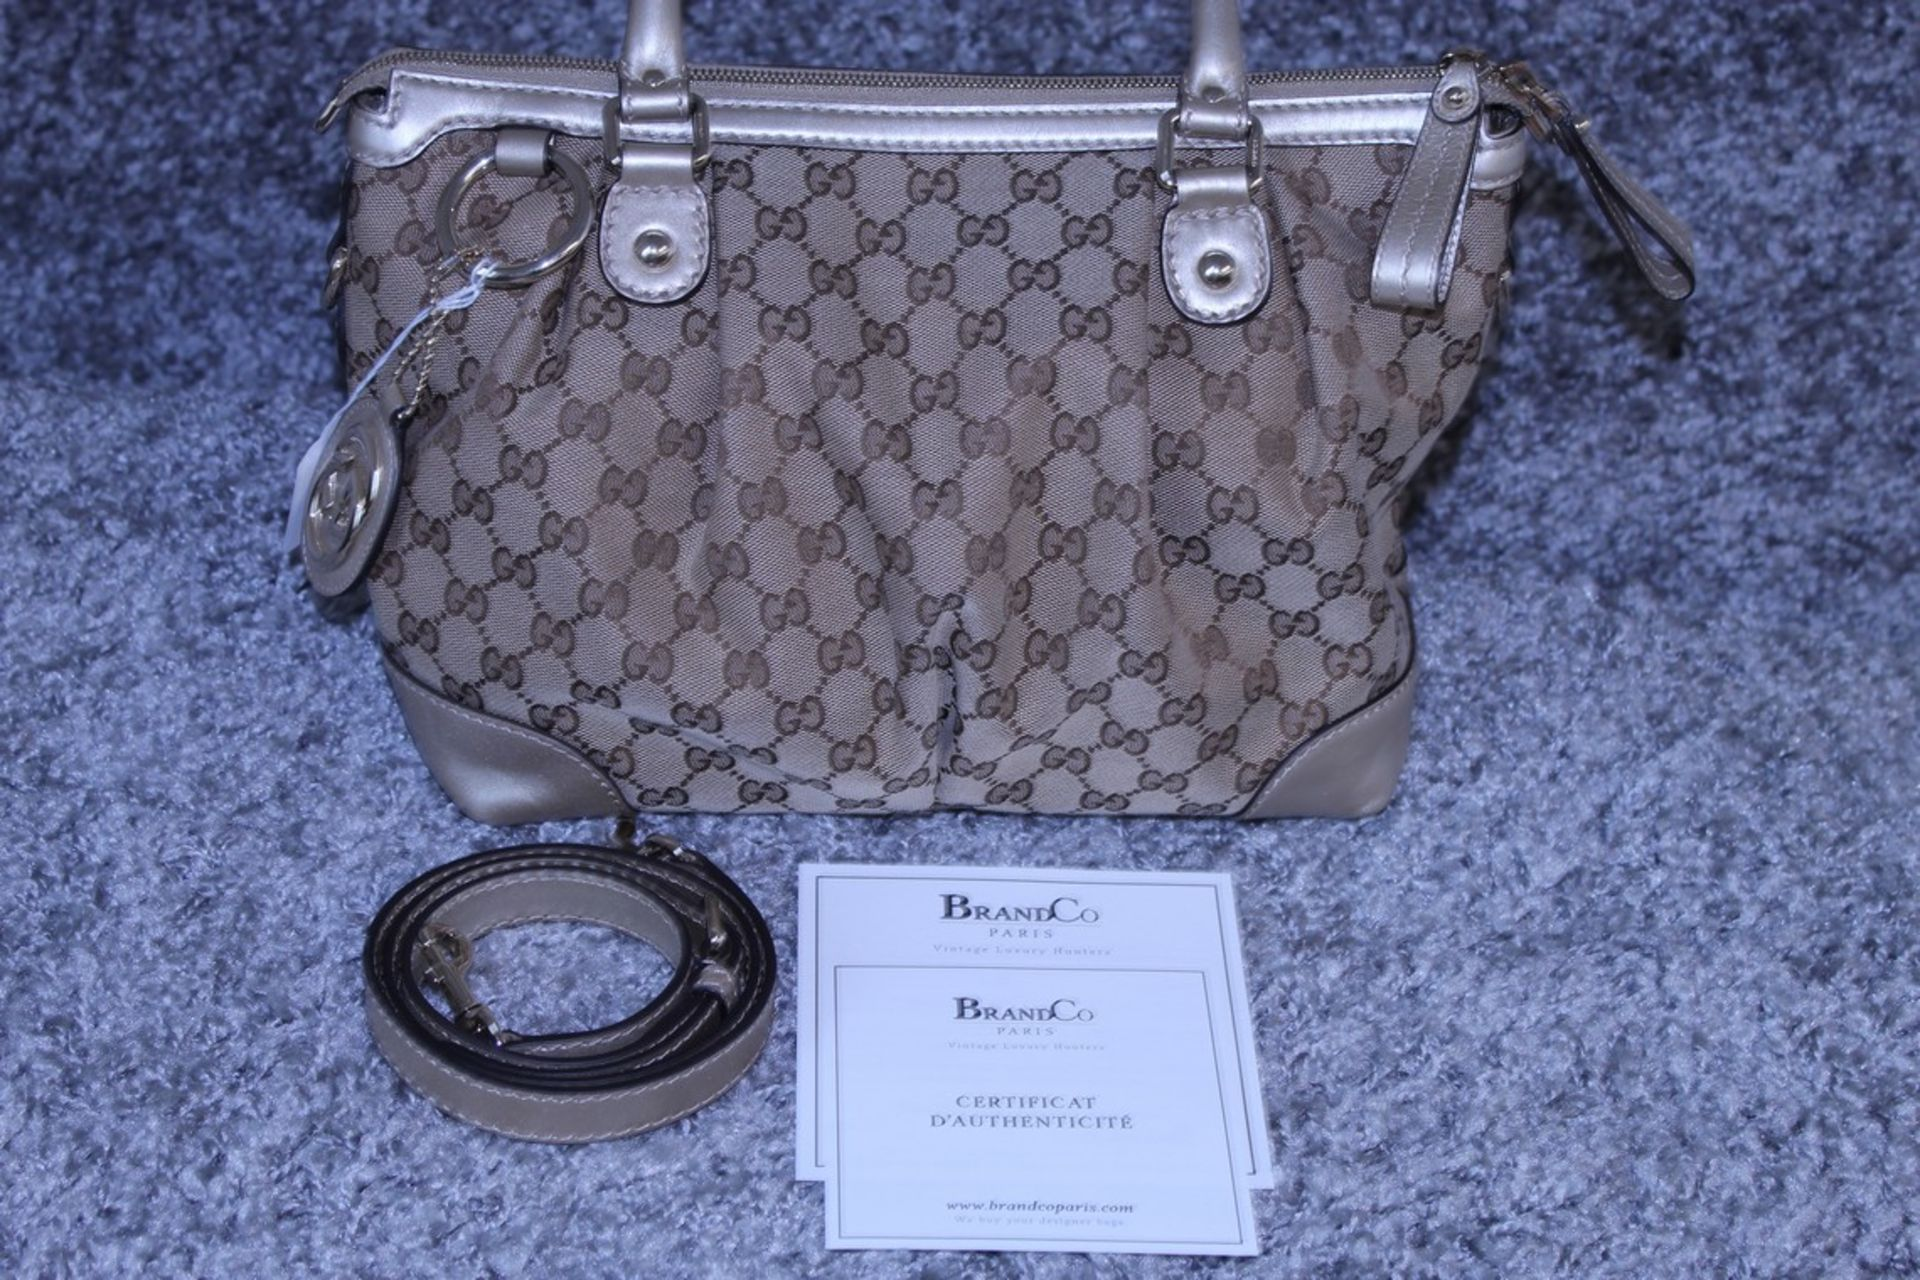 RRP £1,600 Sukey Top Handle Shoulder Bag, Beige/Brown Monogram Canvas, 28.5X22X12Cm (Production Code - Image 3 of 5